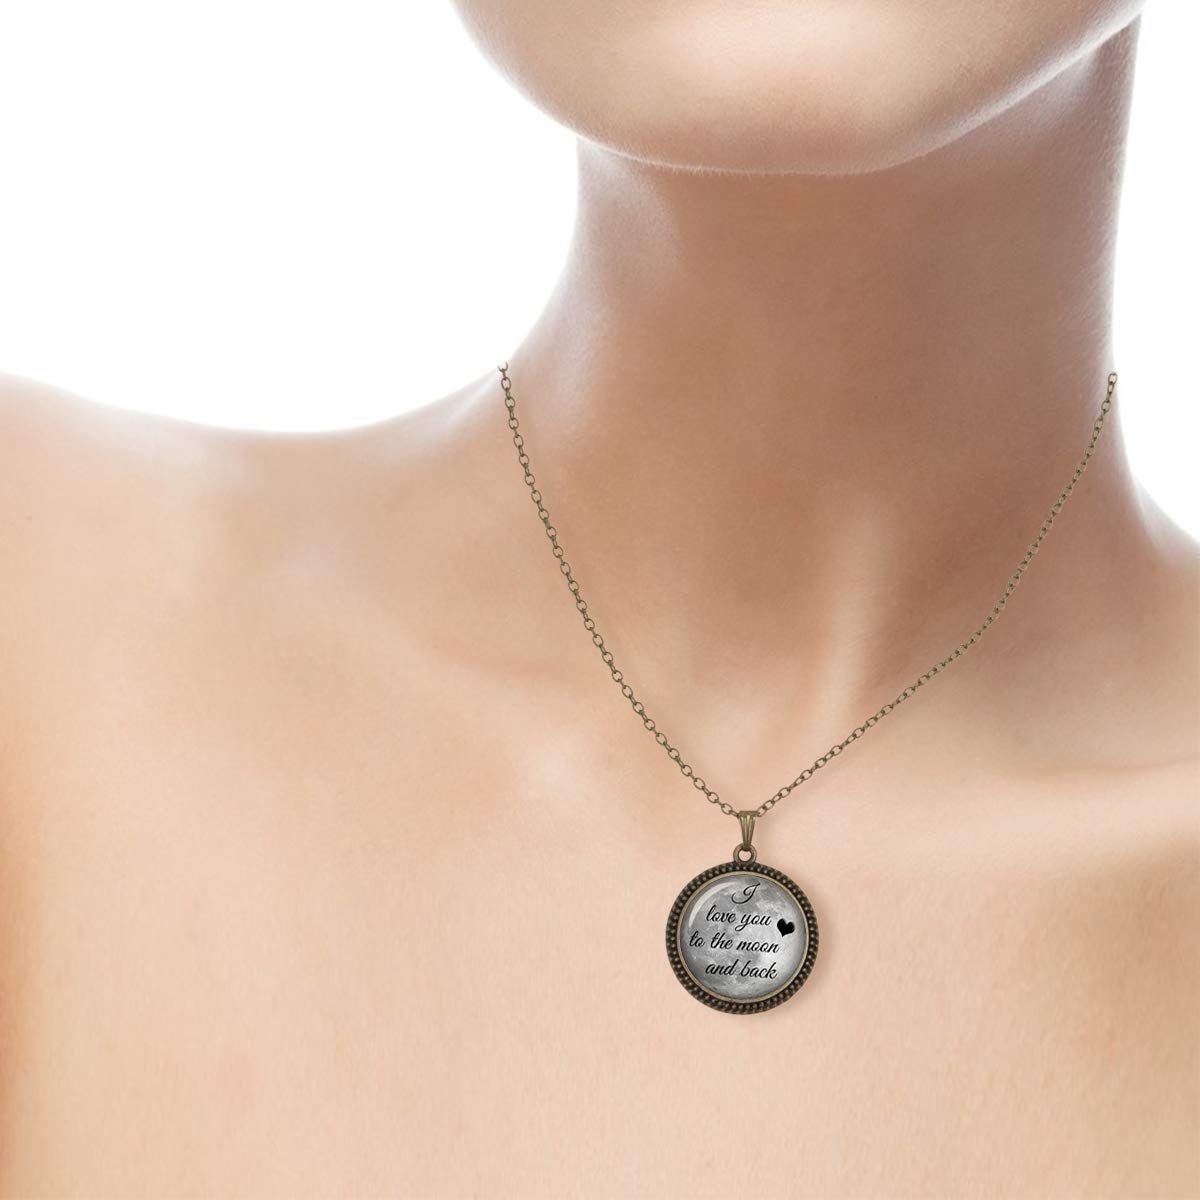 Lightrain I Love You to The Moon and Back Full Moon Pendant Necklace Vintage Bronze Chain Statement Necklace Handmade Jewelry Gifts